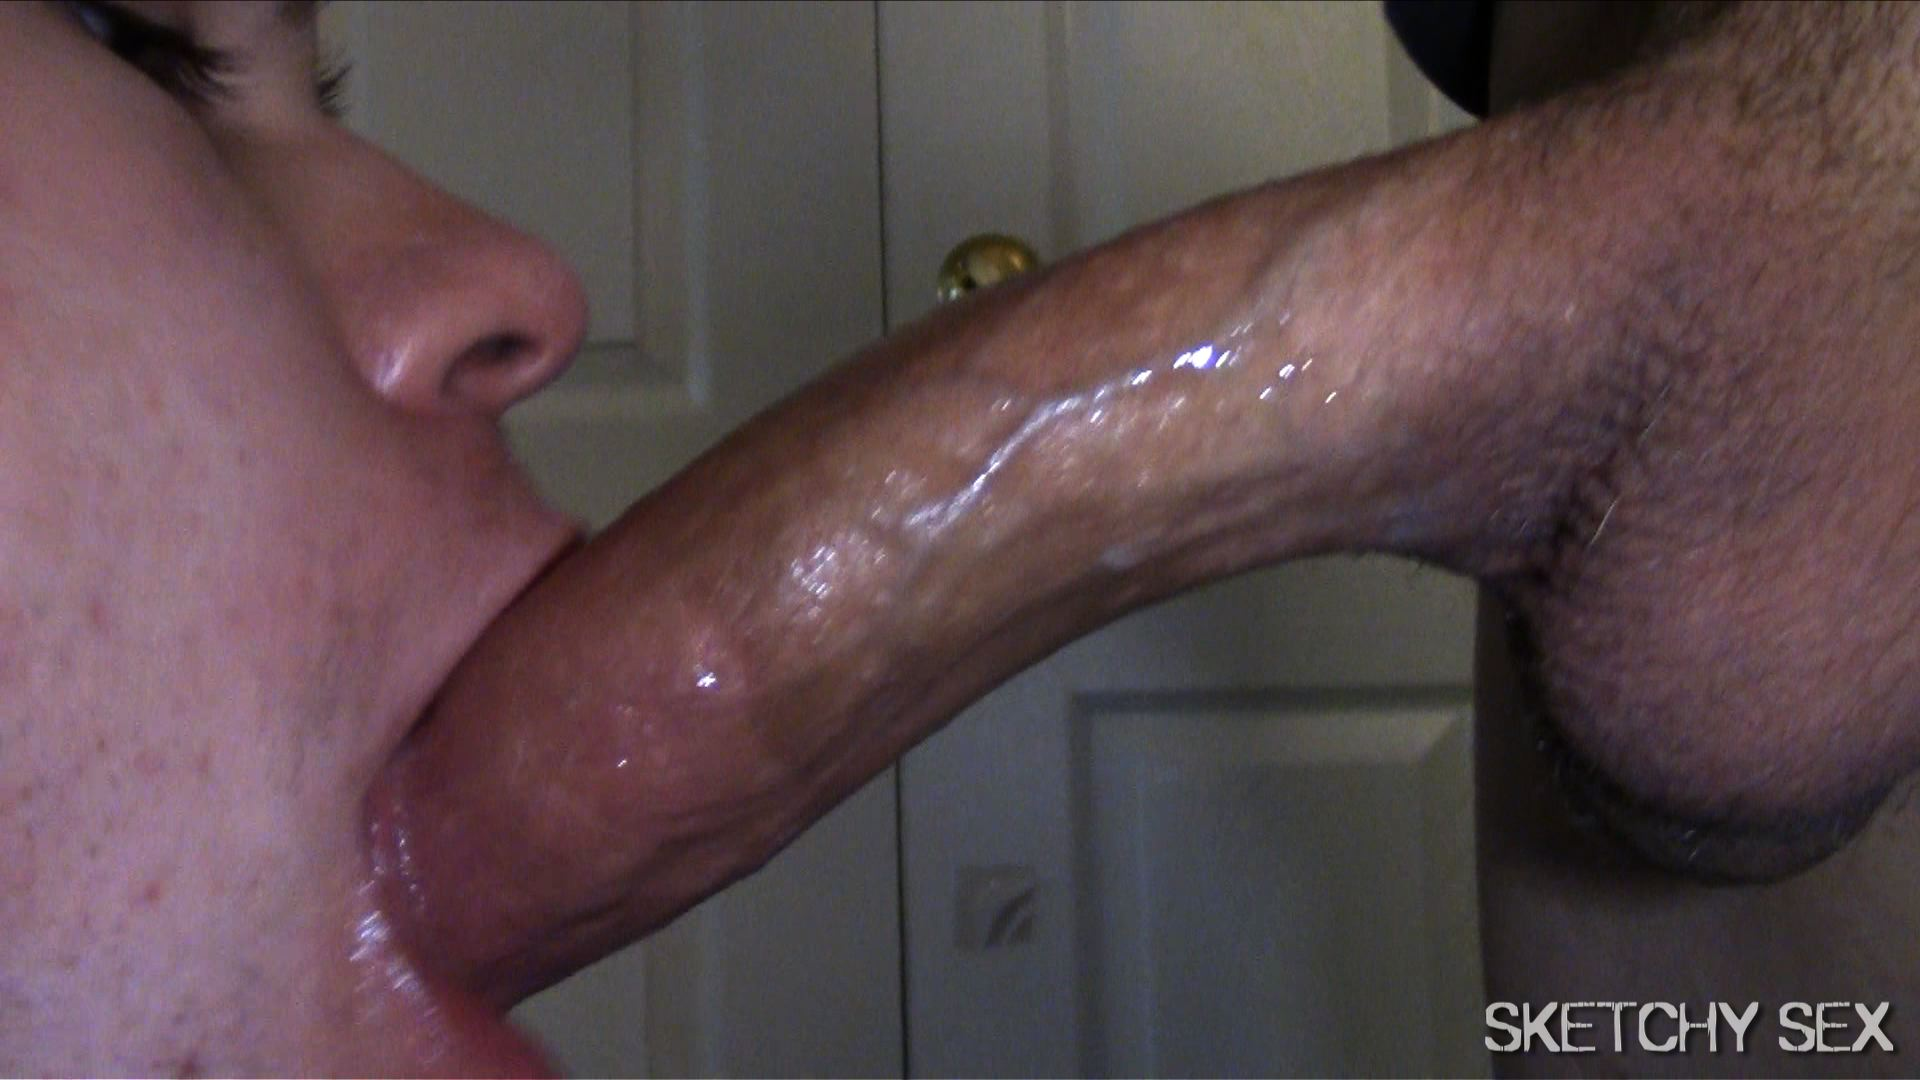 SEED OF ADDICTION (Bareback) at SketchySex.com